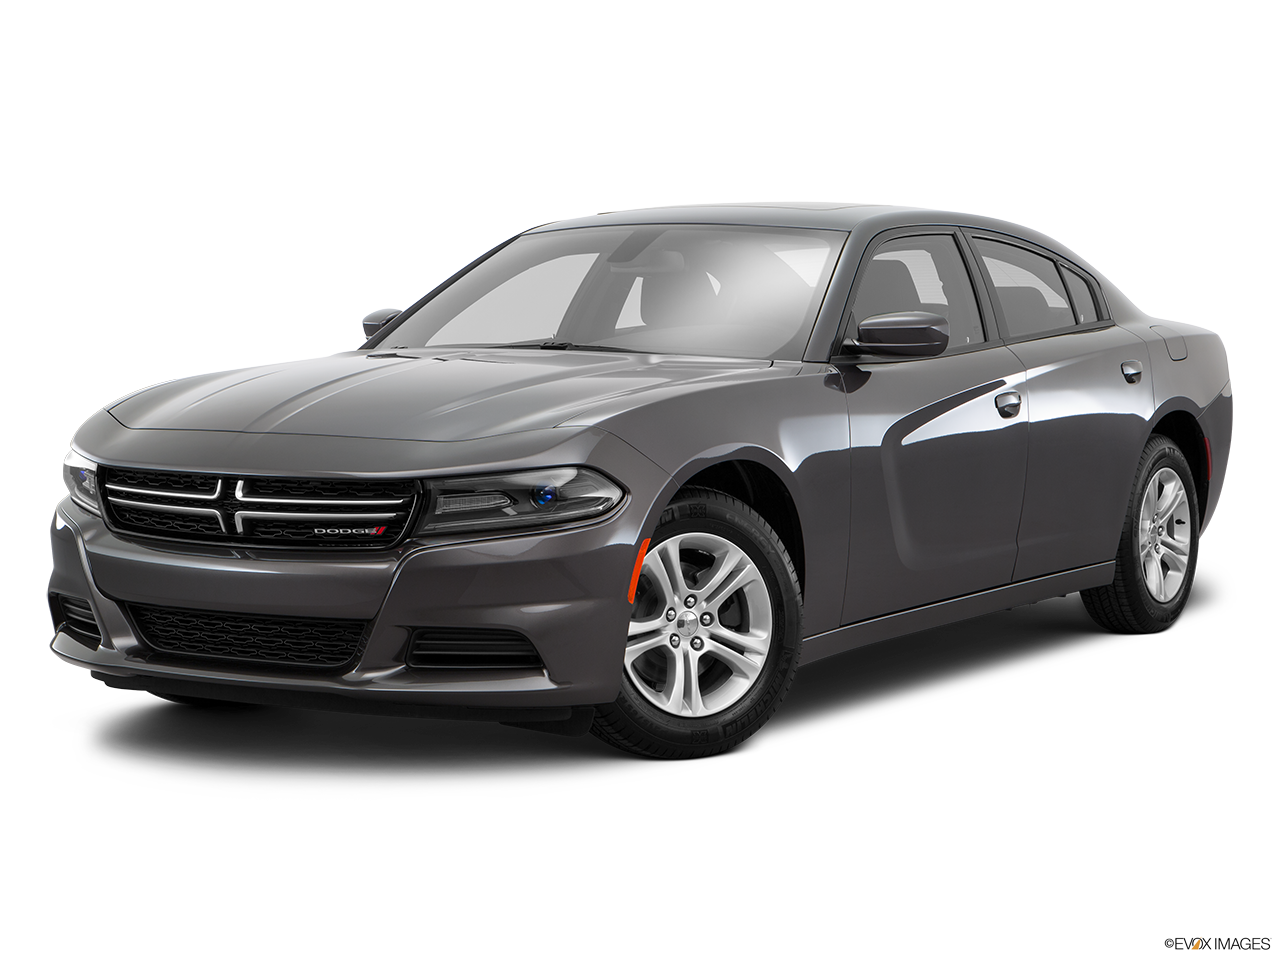 Test Drive A 2016 Dodge Charger at Moss Bros Chrysler Dodge Jeep Ram Riverside in Riverside